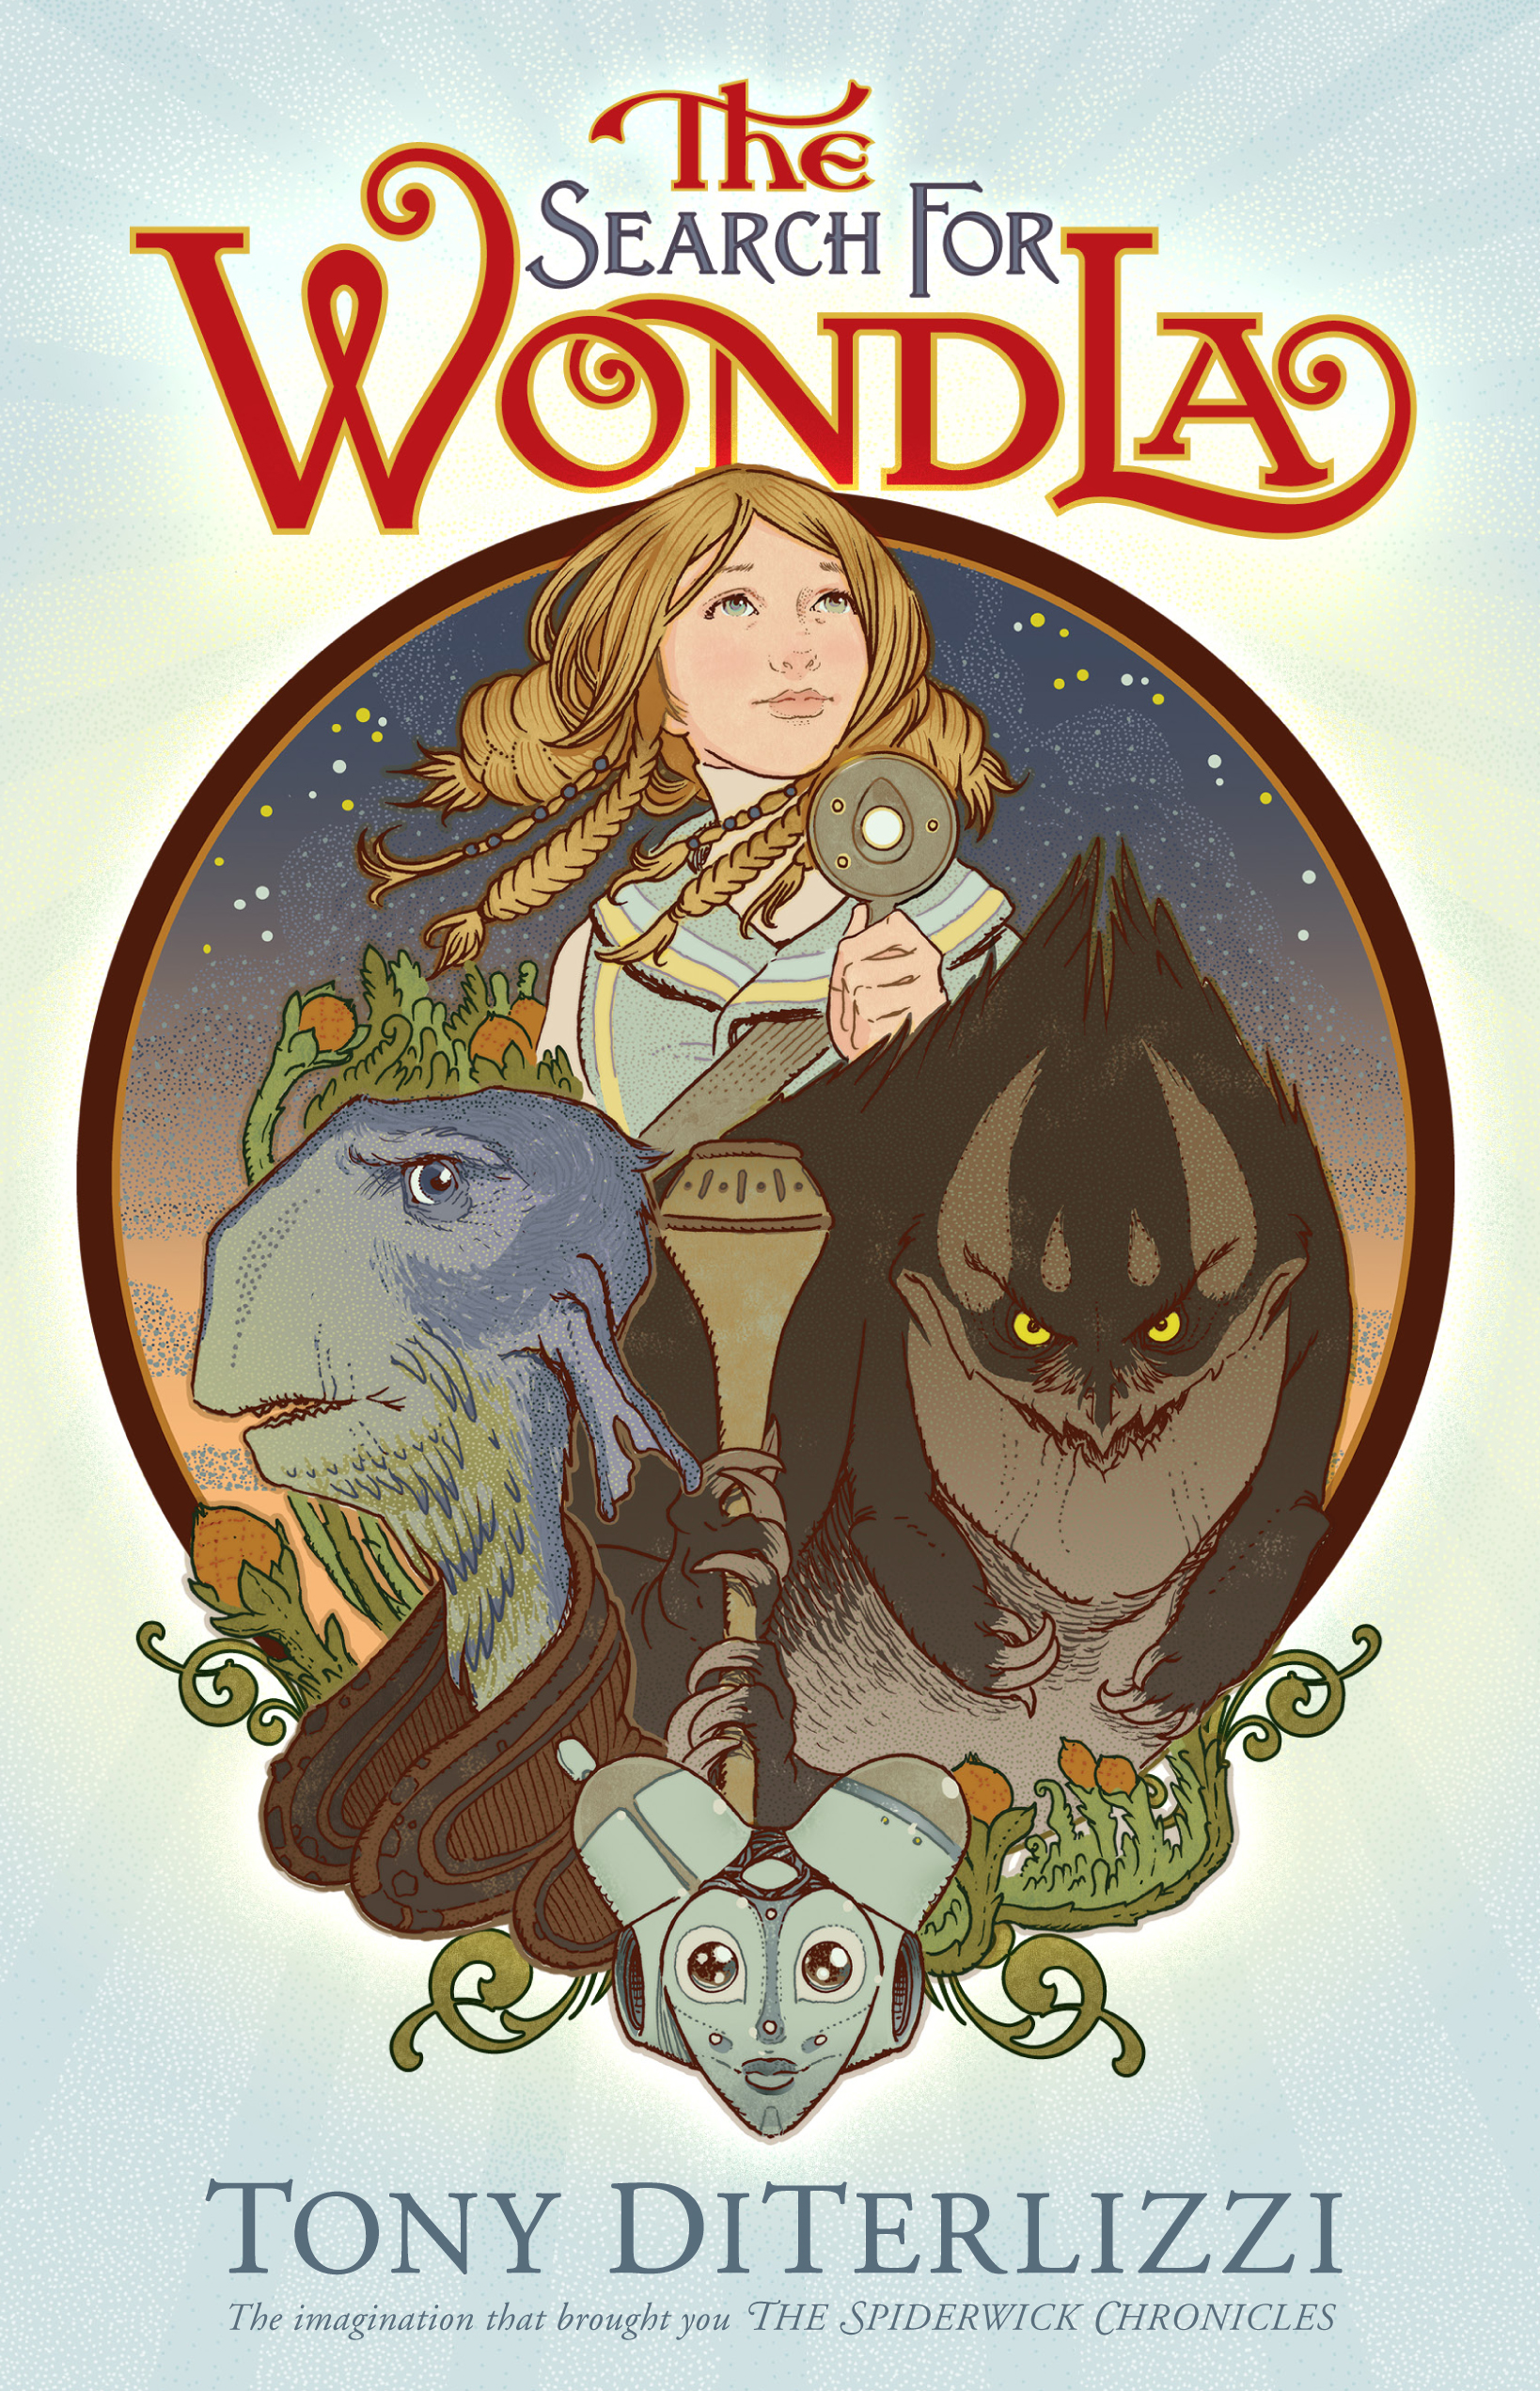 Book Cover Image (jpg): The Search For Wondla